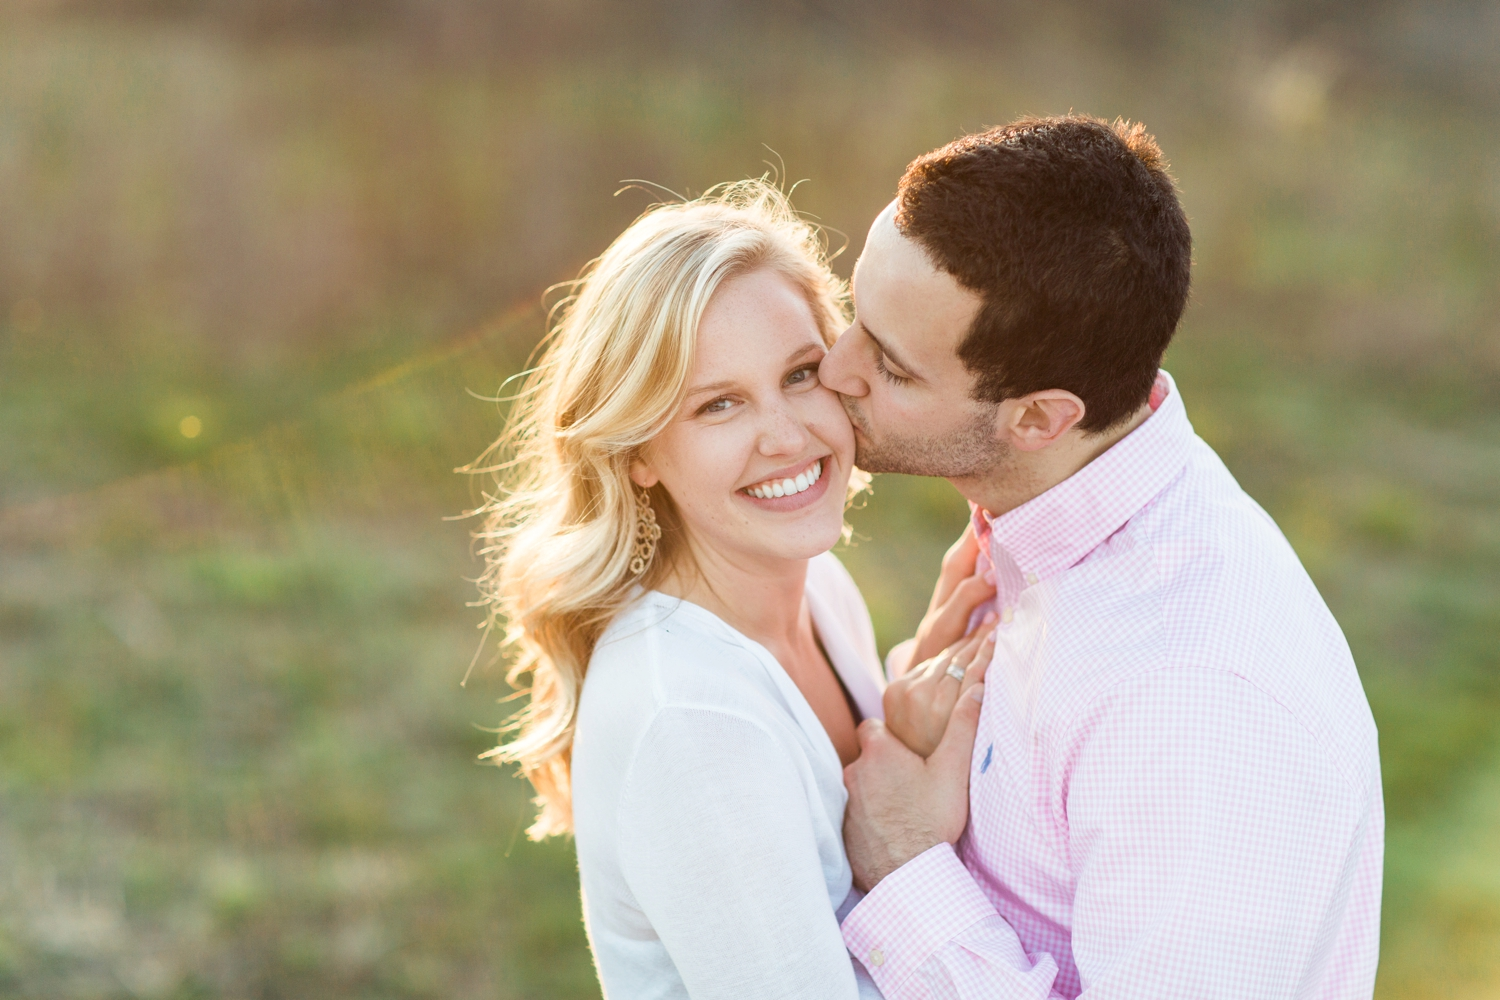 indianapolis_wedding_photographer_golden_hour_engagement_chloe_luka_photography_6141.jpg